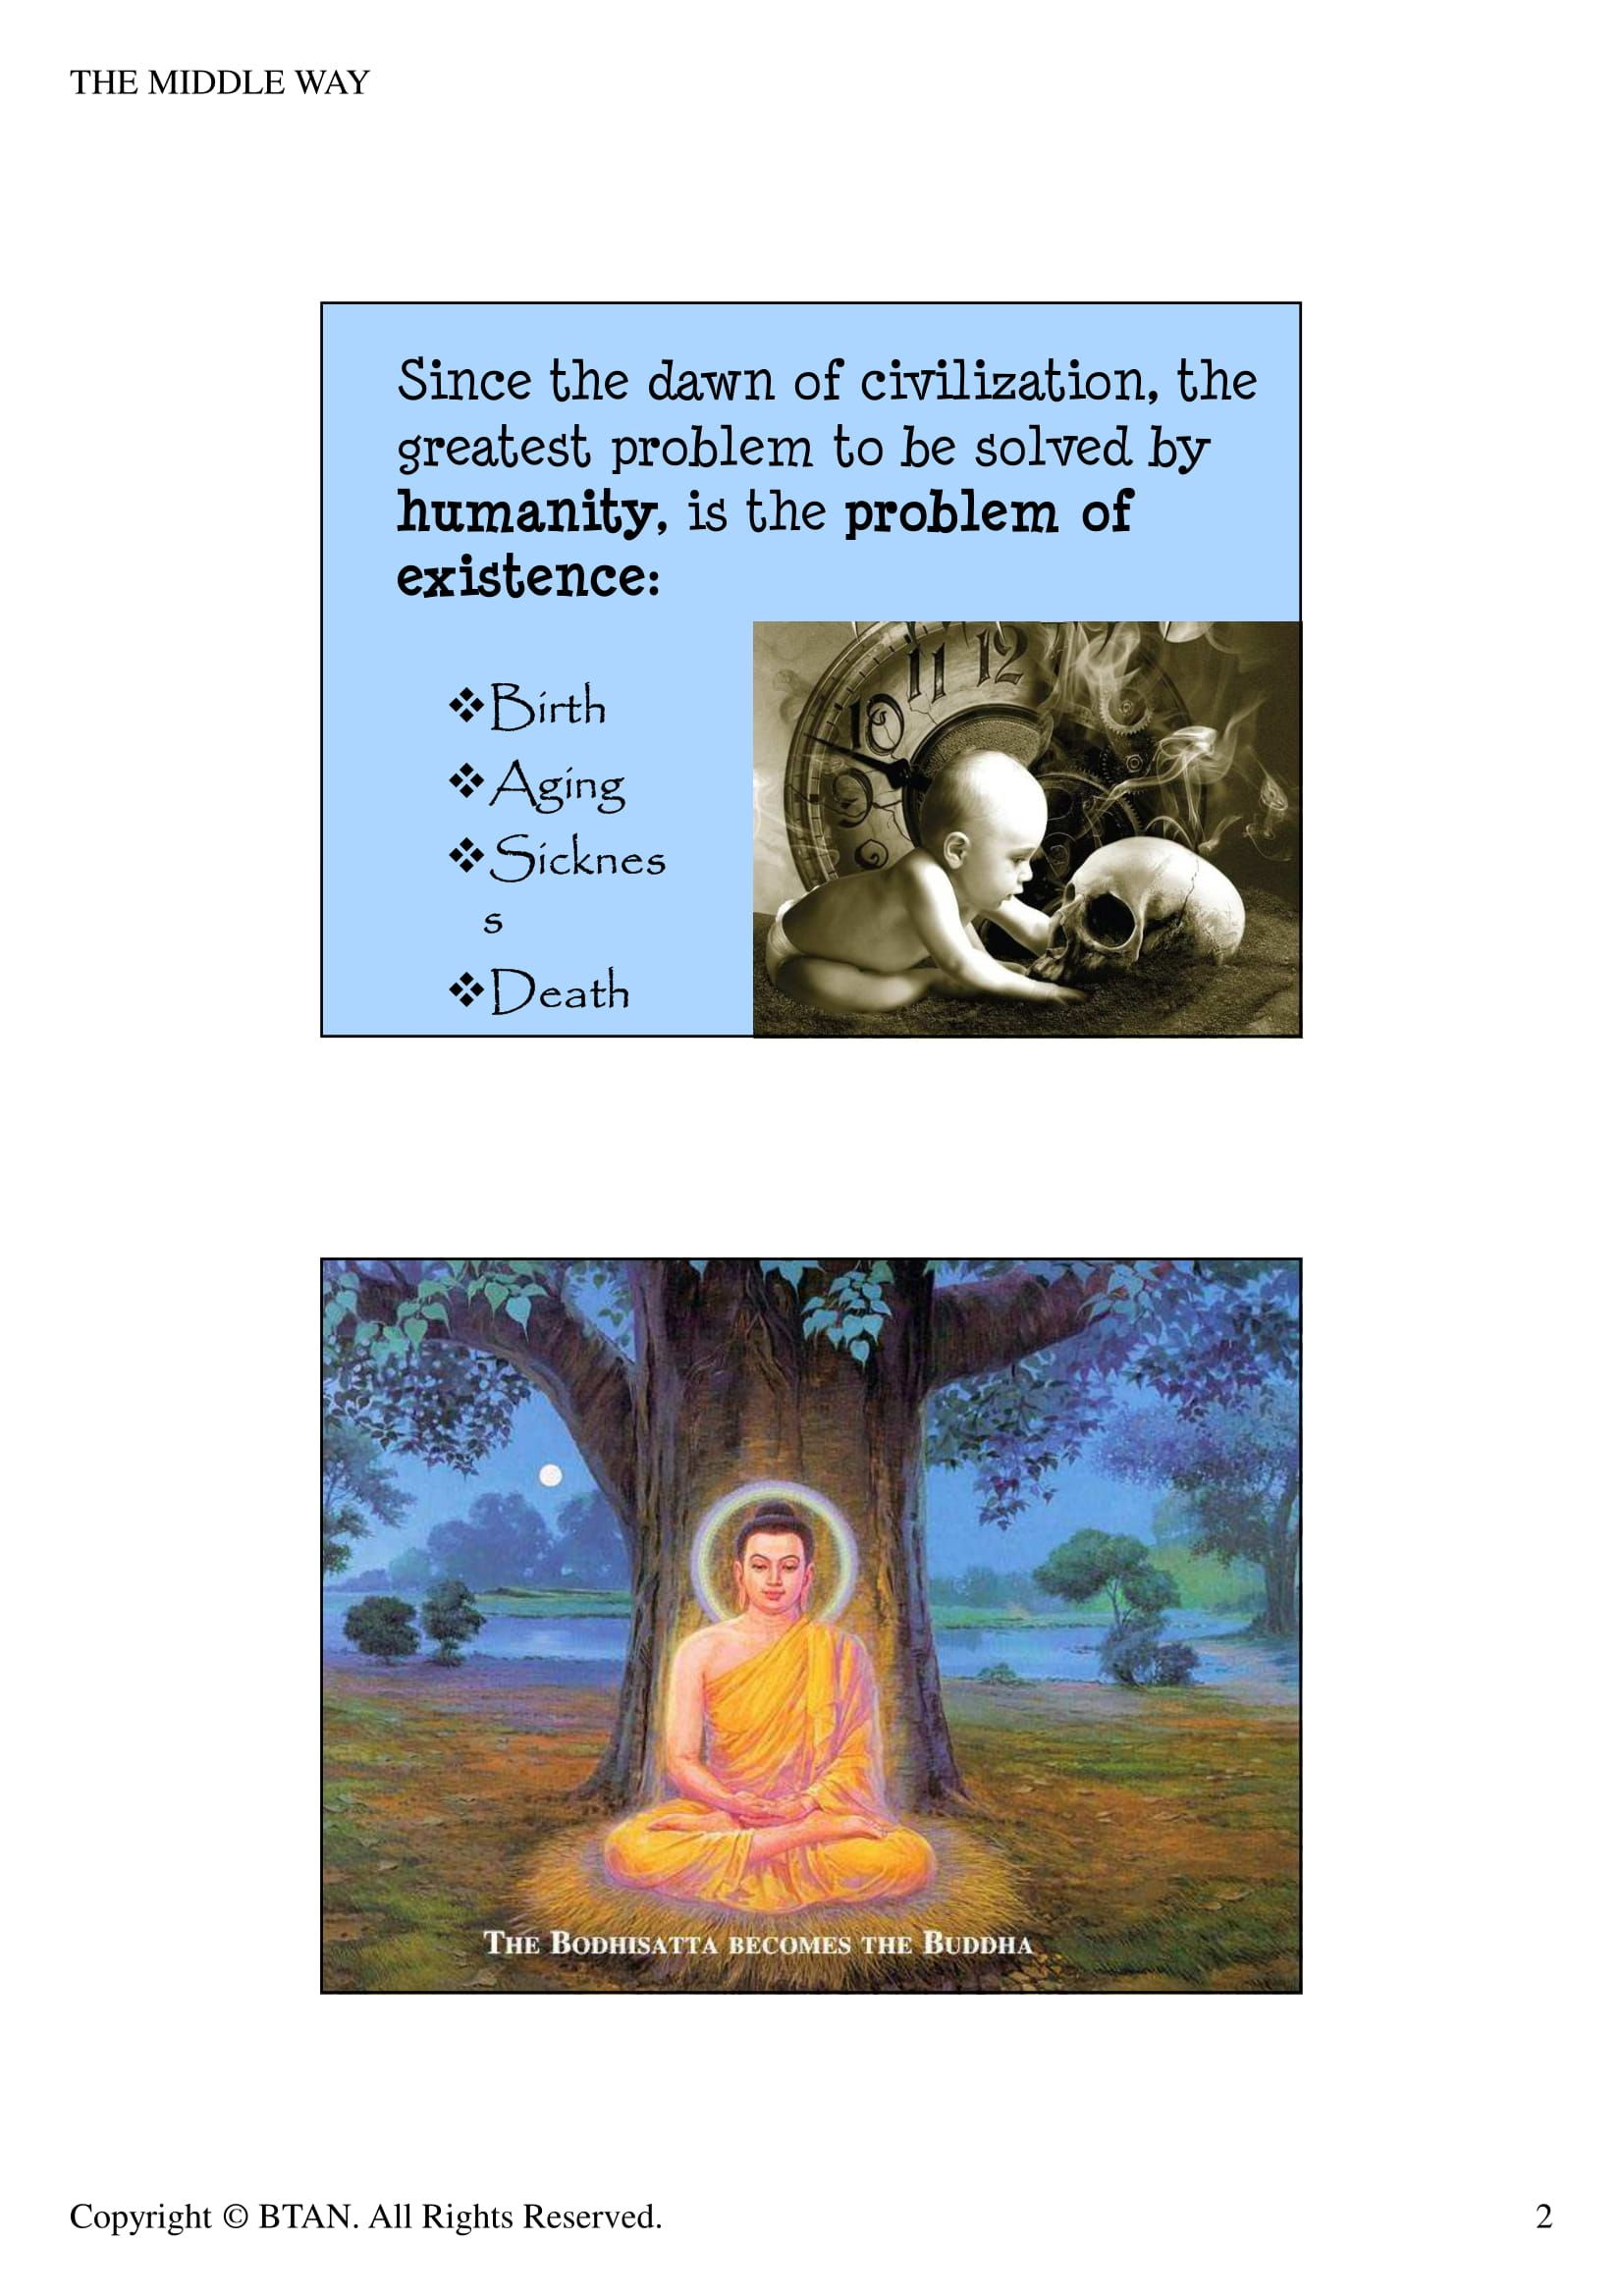 The Middle Way (With images) | The middle, Buddhism, Greatful